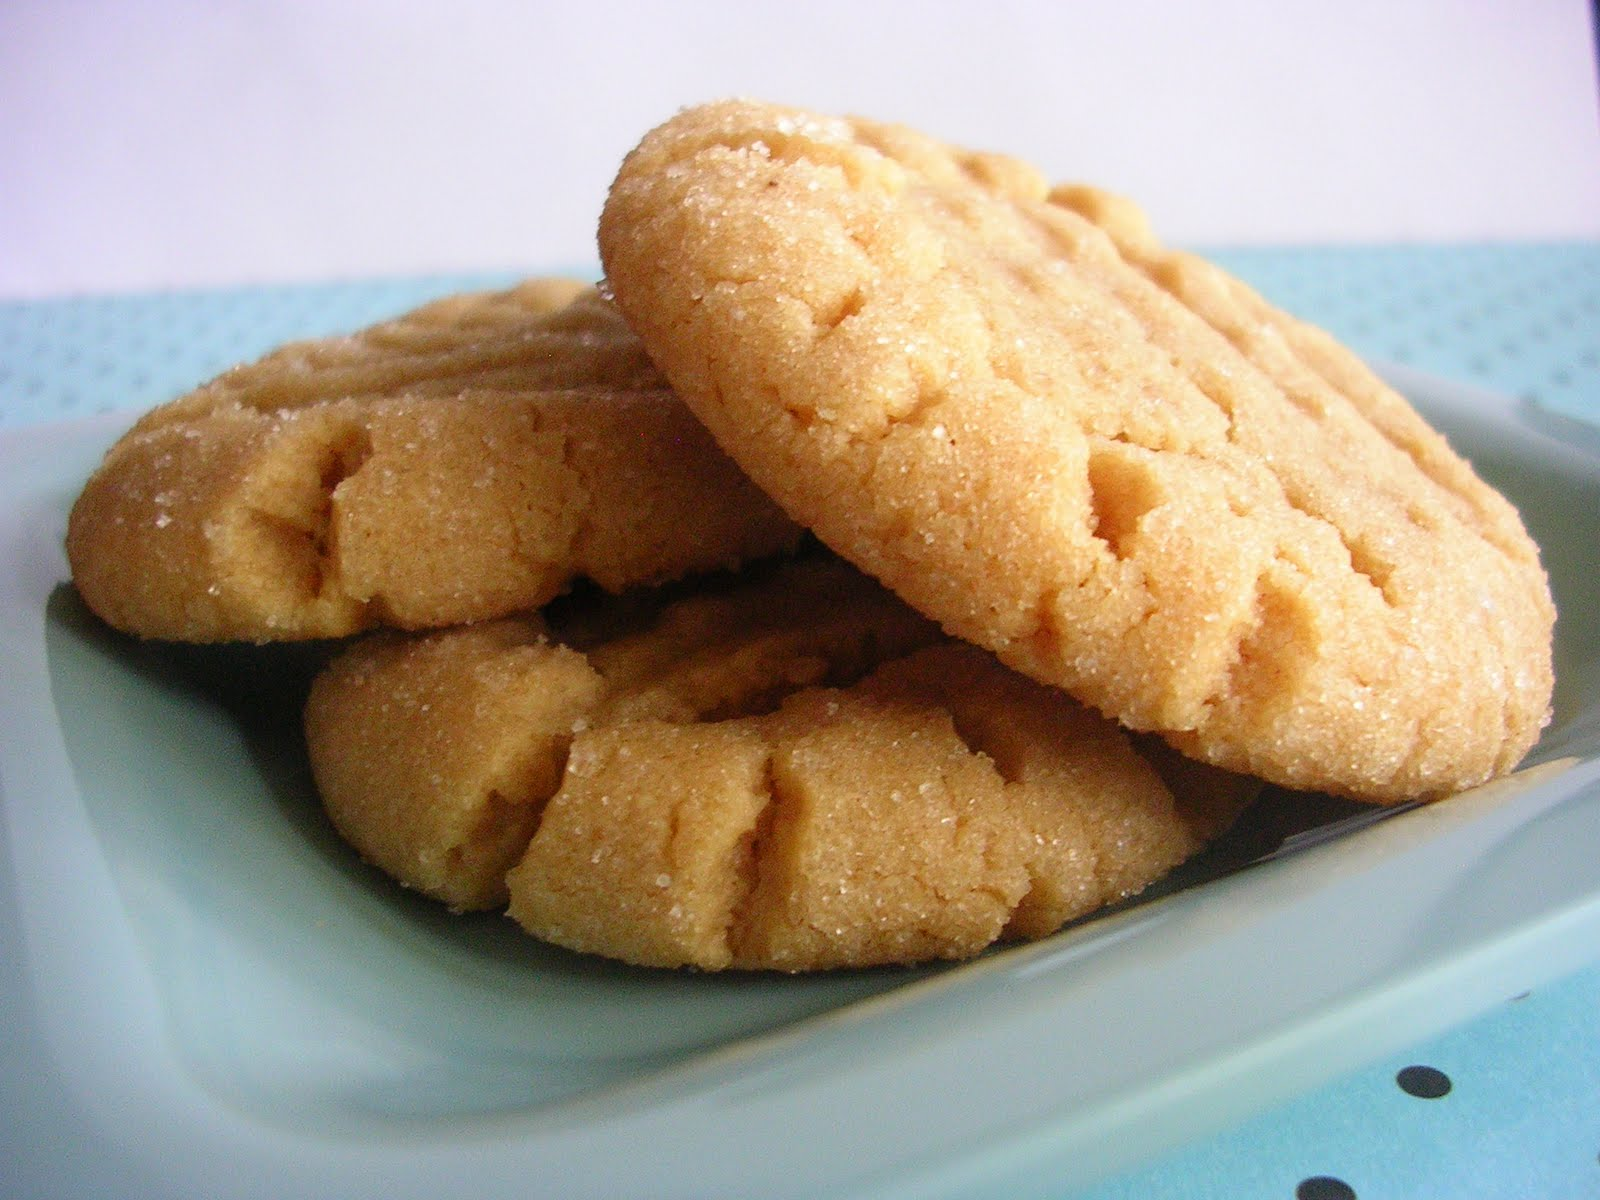 The Busty Baker: Mini Throwdown: Peanut Butter Cookies (Part 2)